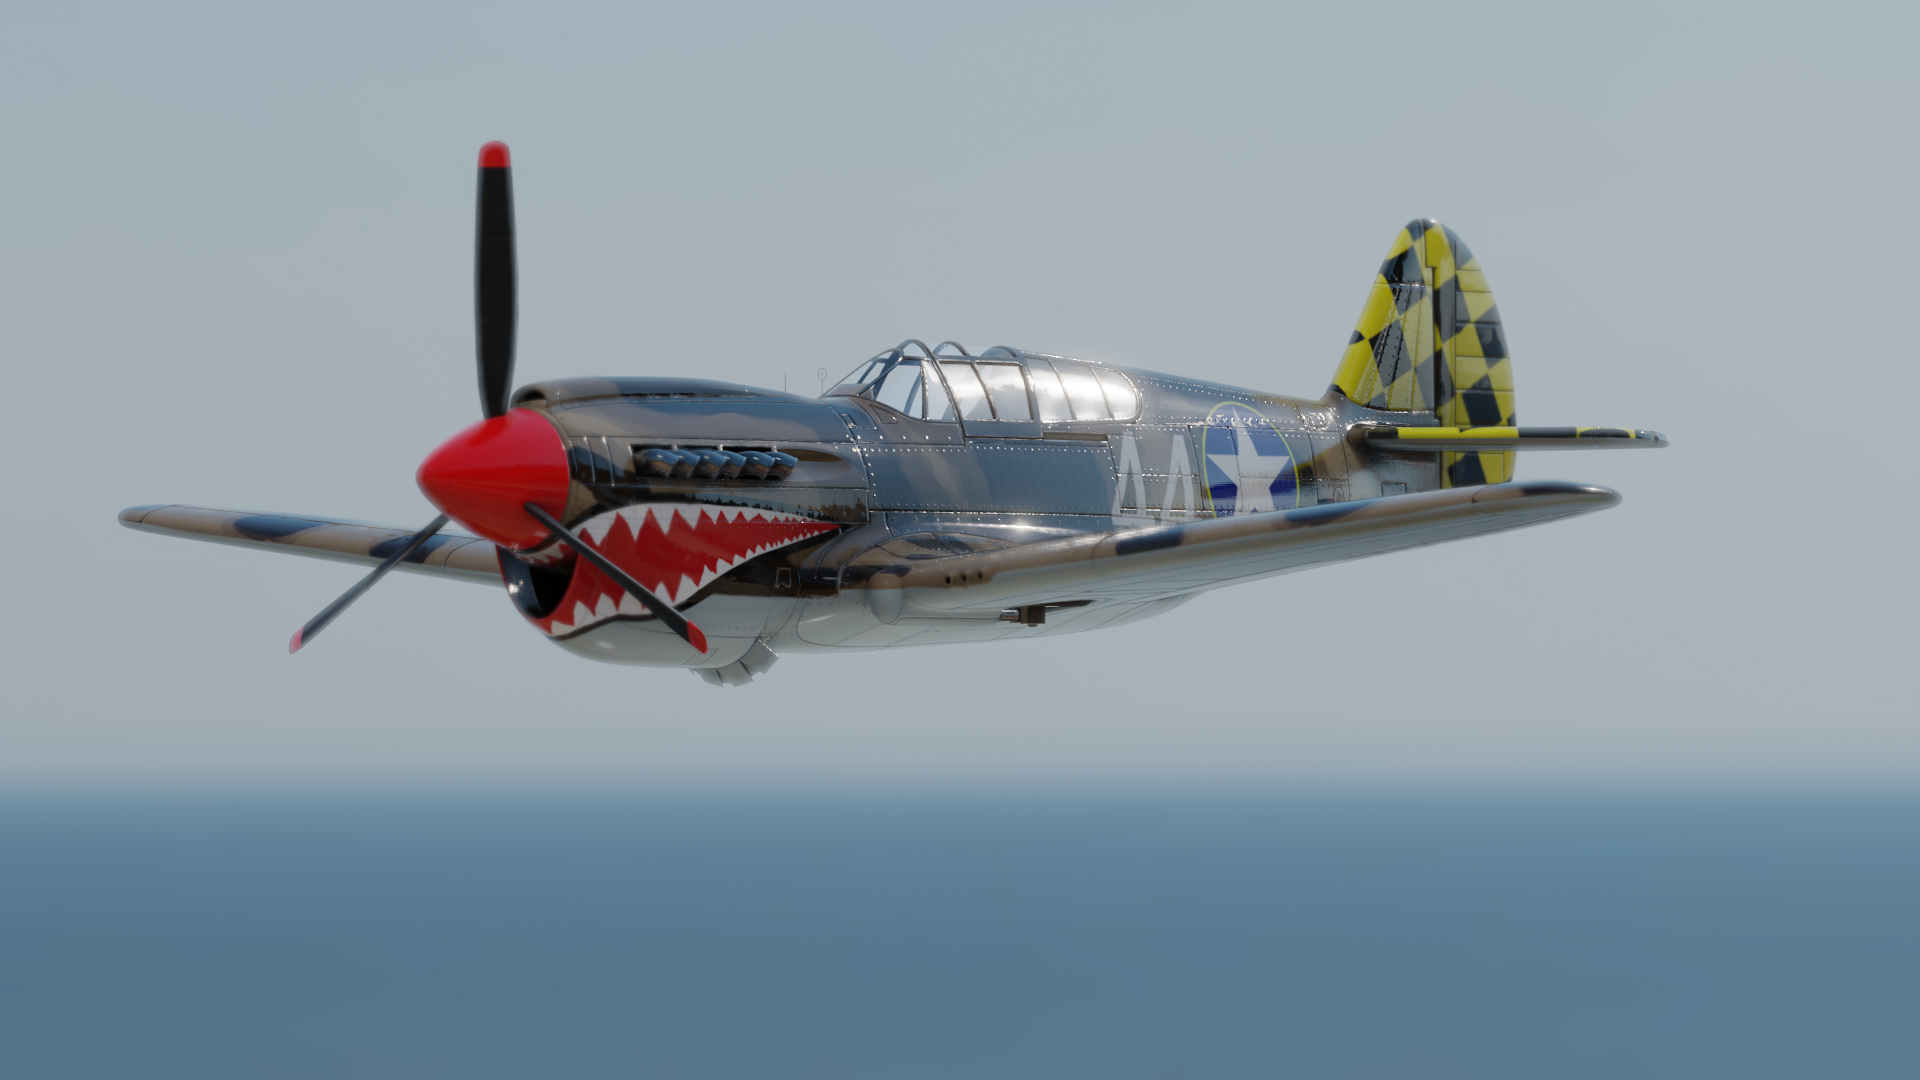 P40 Warhawk preview image 2